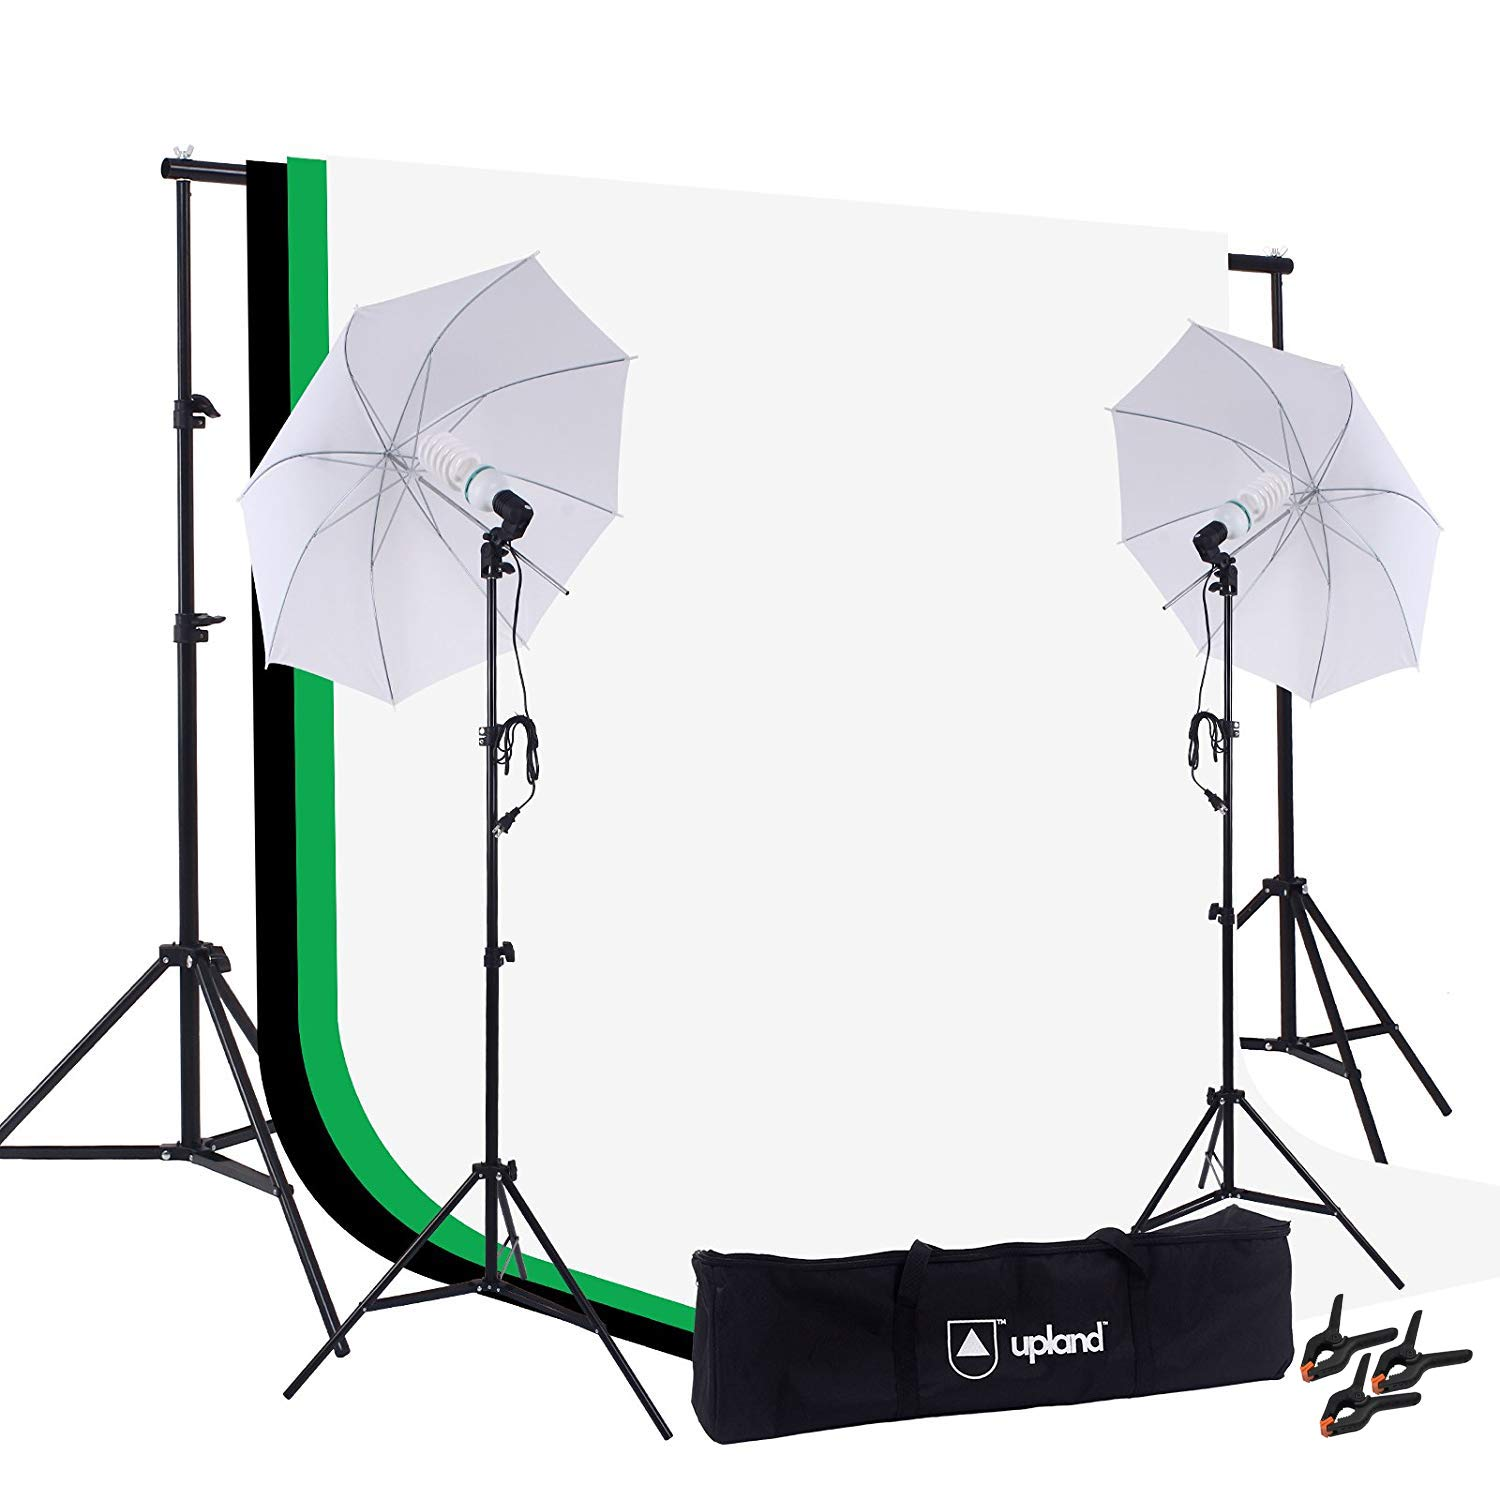 Upland 33-Inch 2 Umbrella Lights with Backdrop System, for Photo Photography, Video Studio Lighting, 1 Backdrop Support Stand (6.6x6.6 Feet), 3 Backdrops (5.4x 10 Feet)